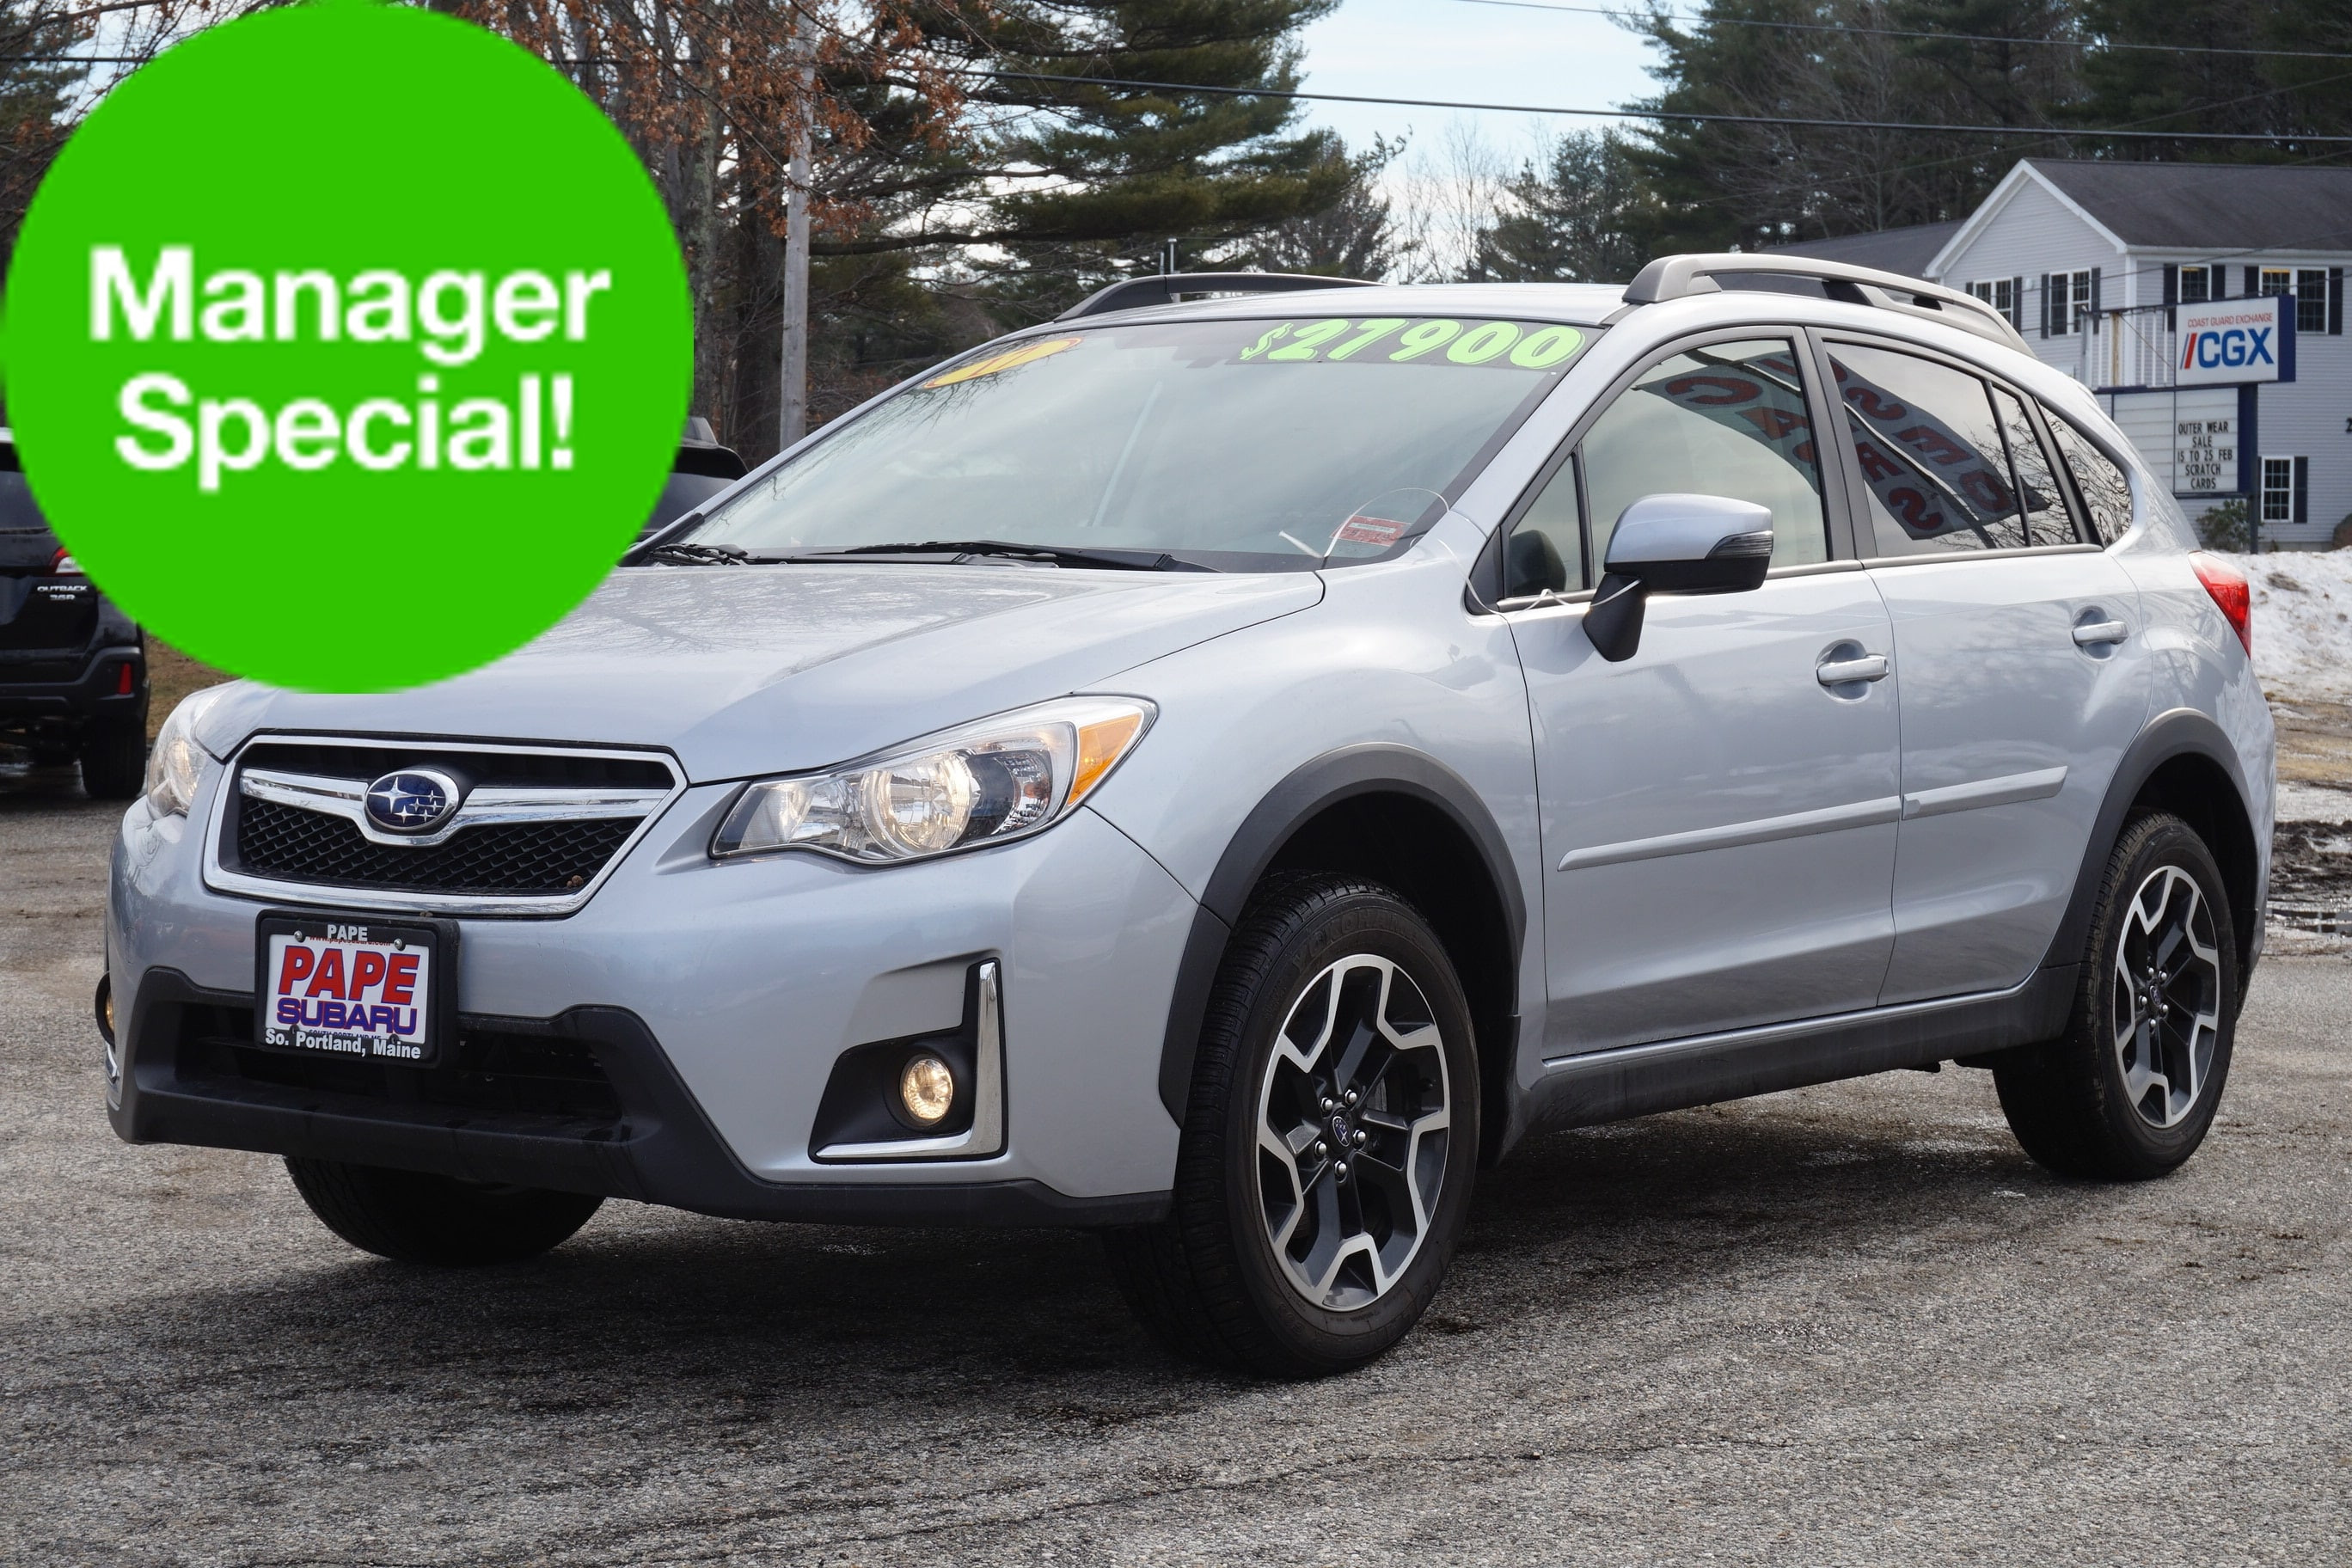 New Used Cars for Sale Near Me Beautiful Elegant Cars for Sale Near Me